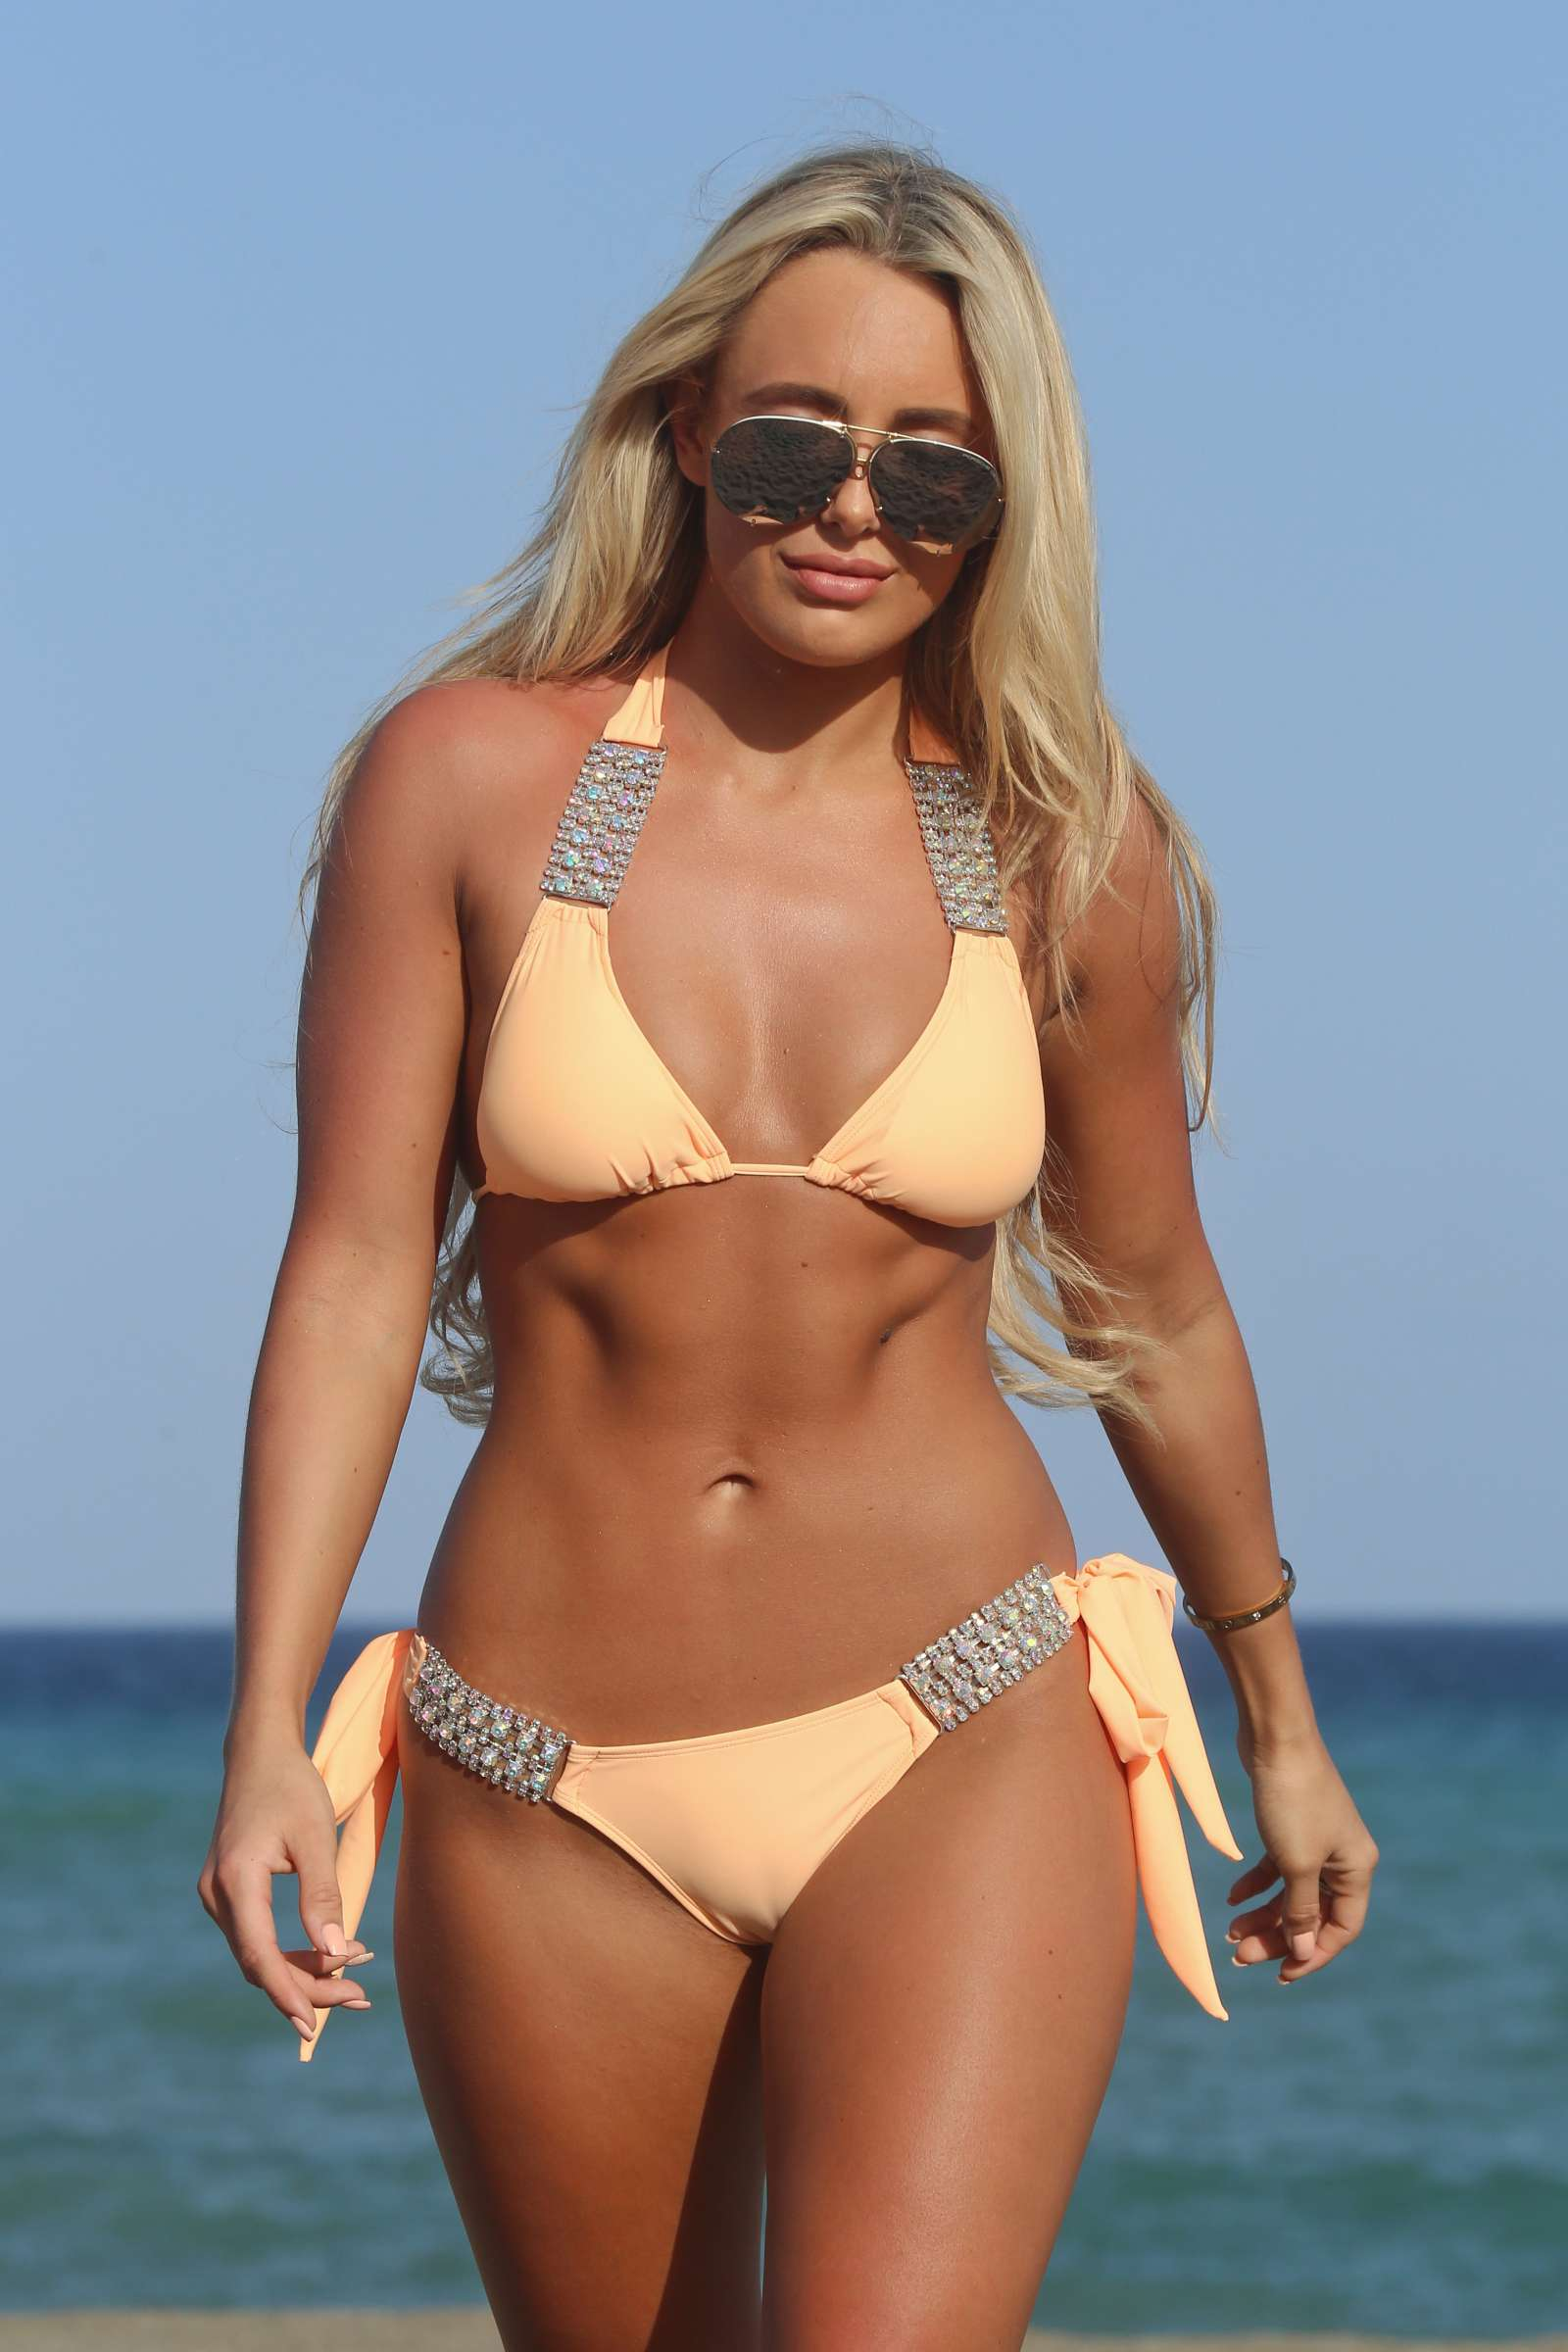 amber turner in bikini on a beach in marbella